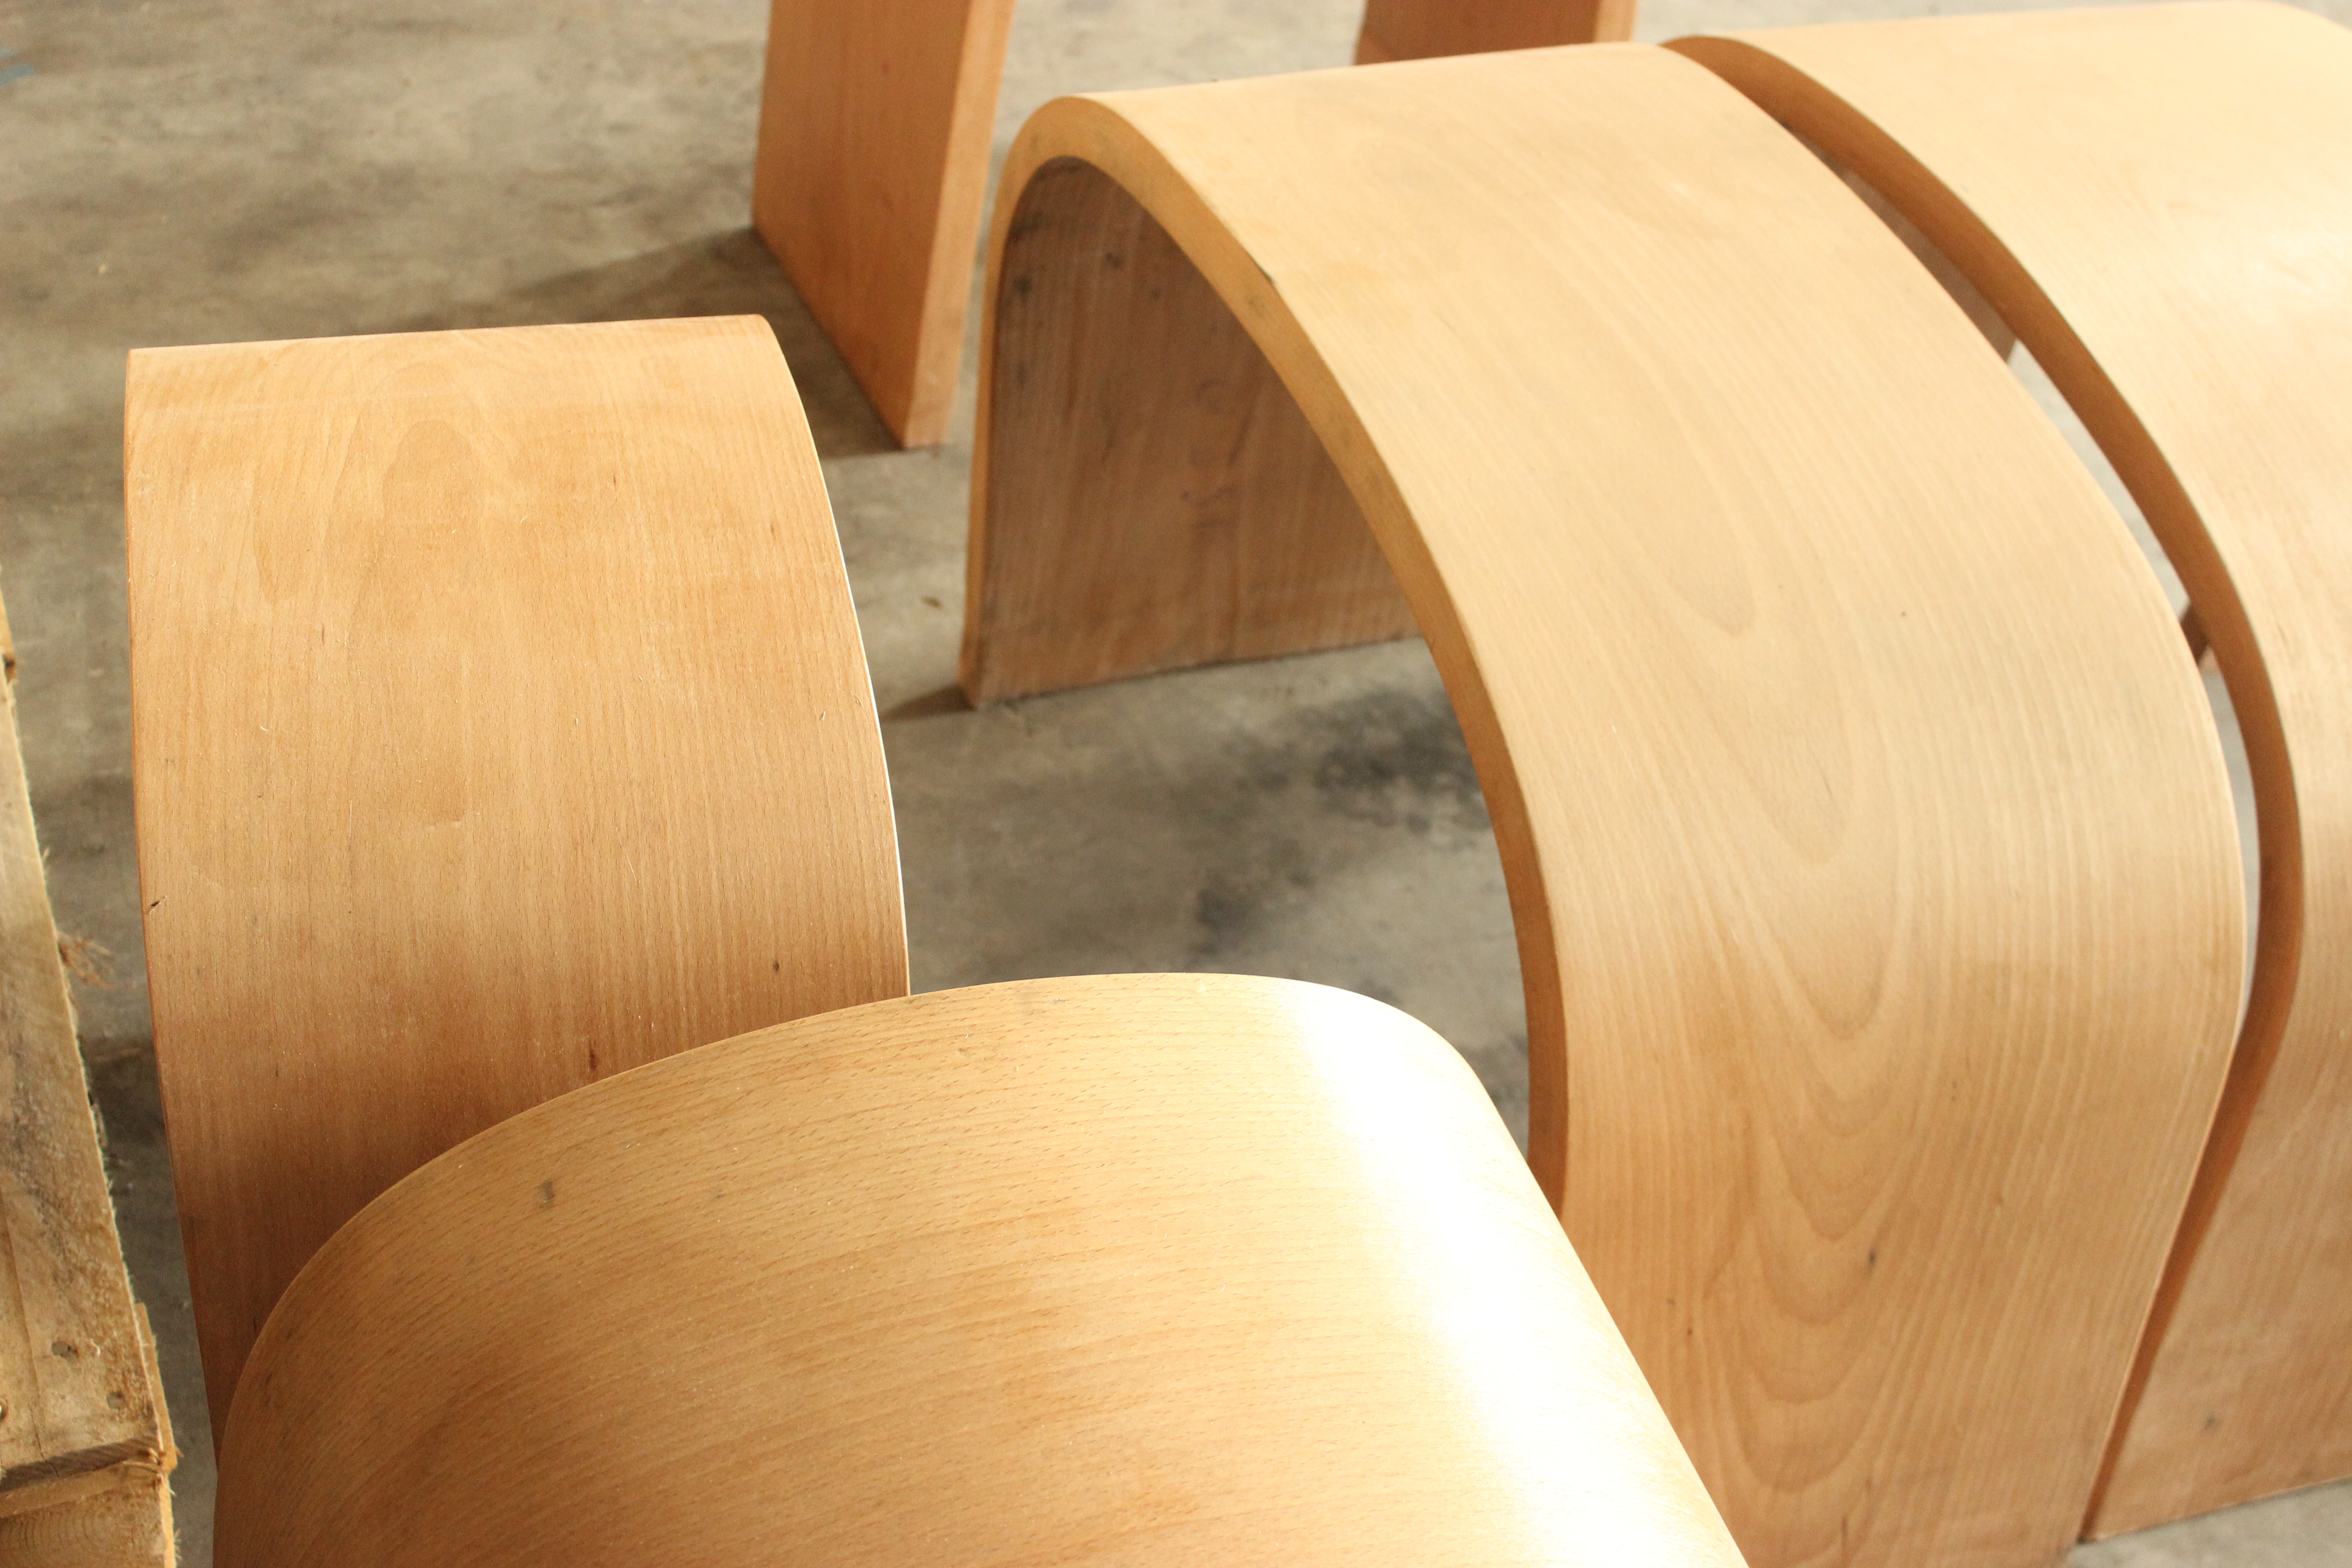 Solid wood bending  made by Curvetta company ltd. Chair and Table Solid wood bent made by Curvetta LTD